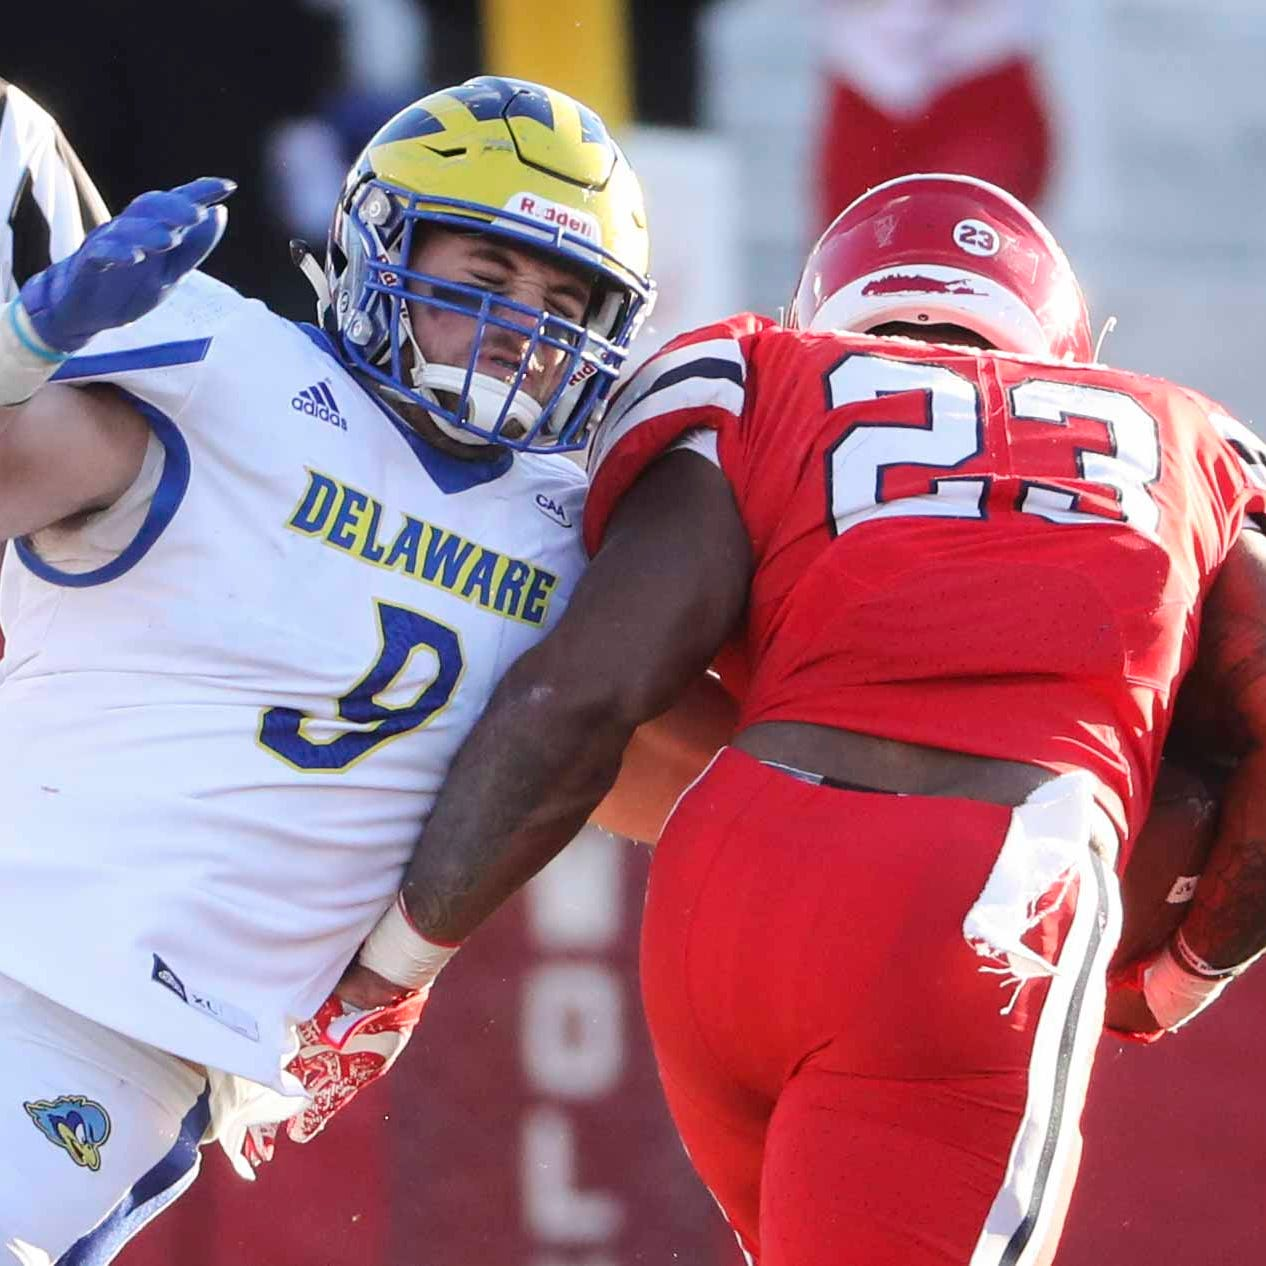 Five University of Delaware players are first-team All-CAA in football